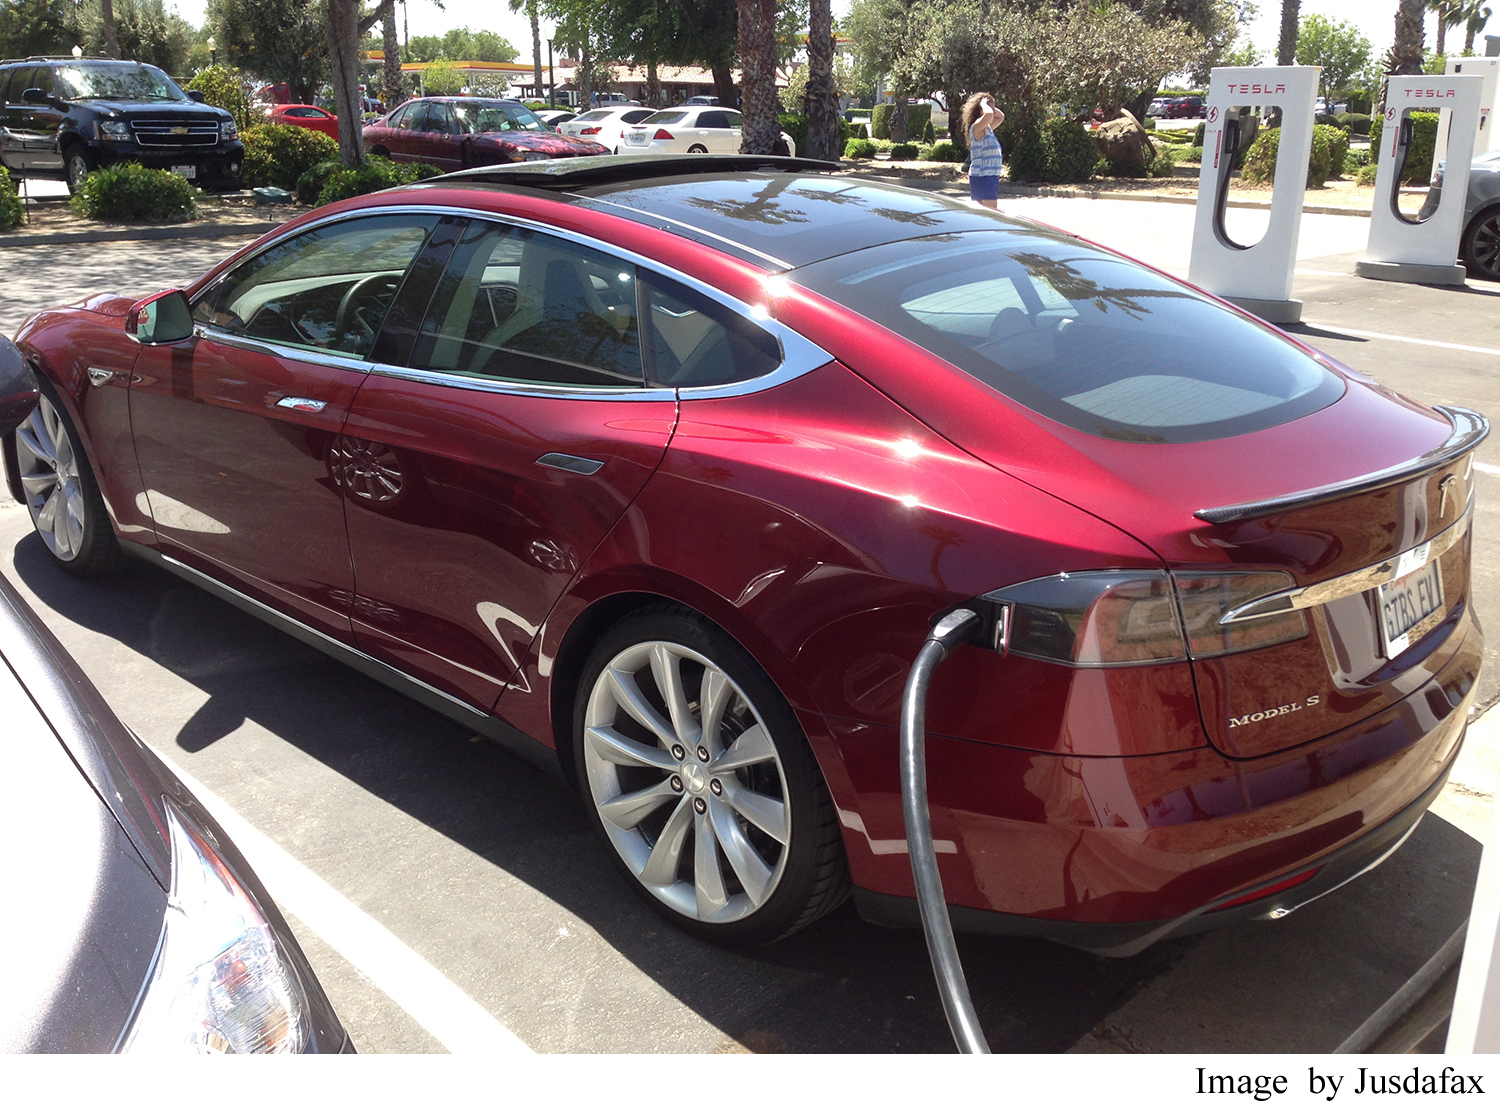 Electric Cars: Will Any Auto Company Make Money? | Watts Up